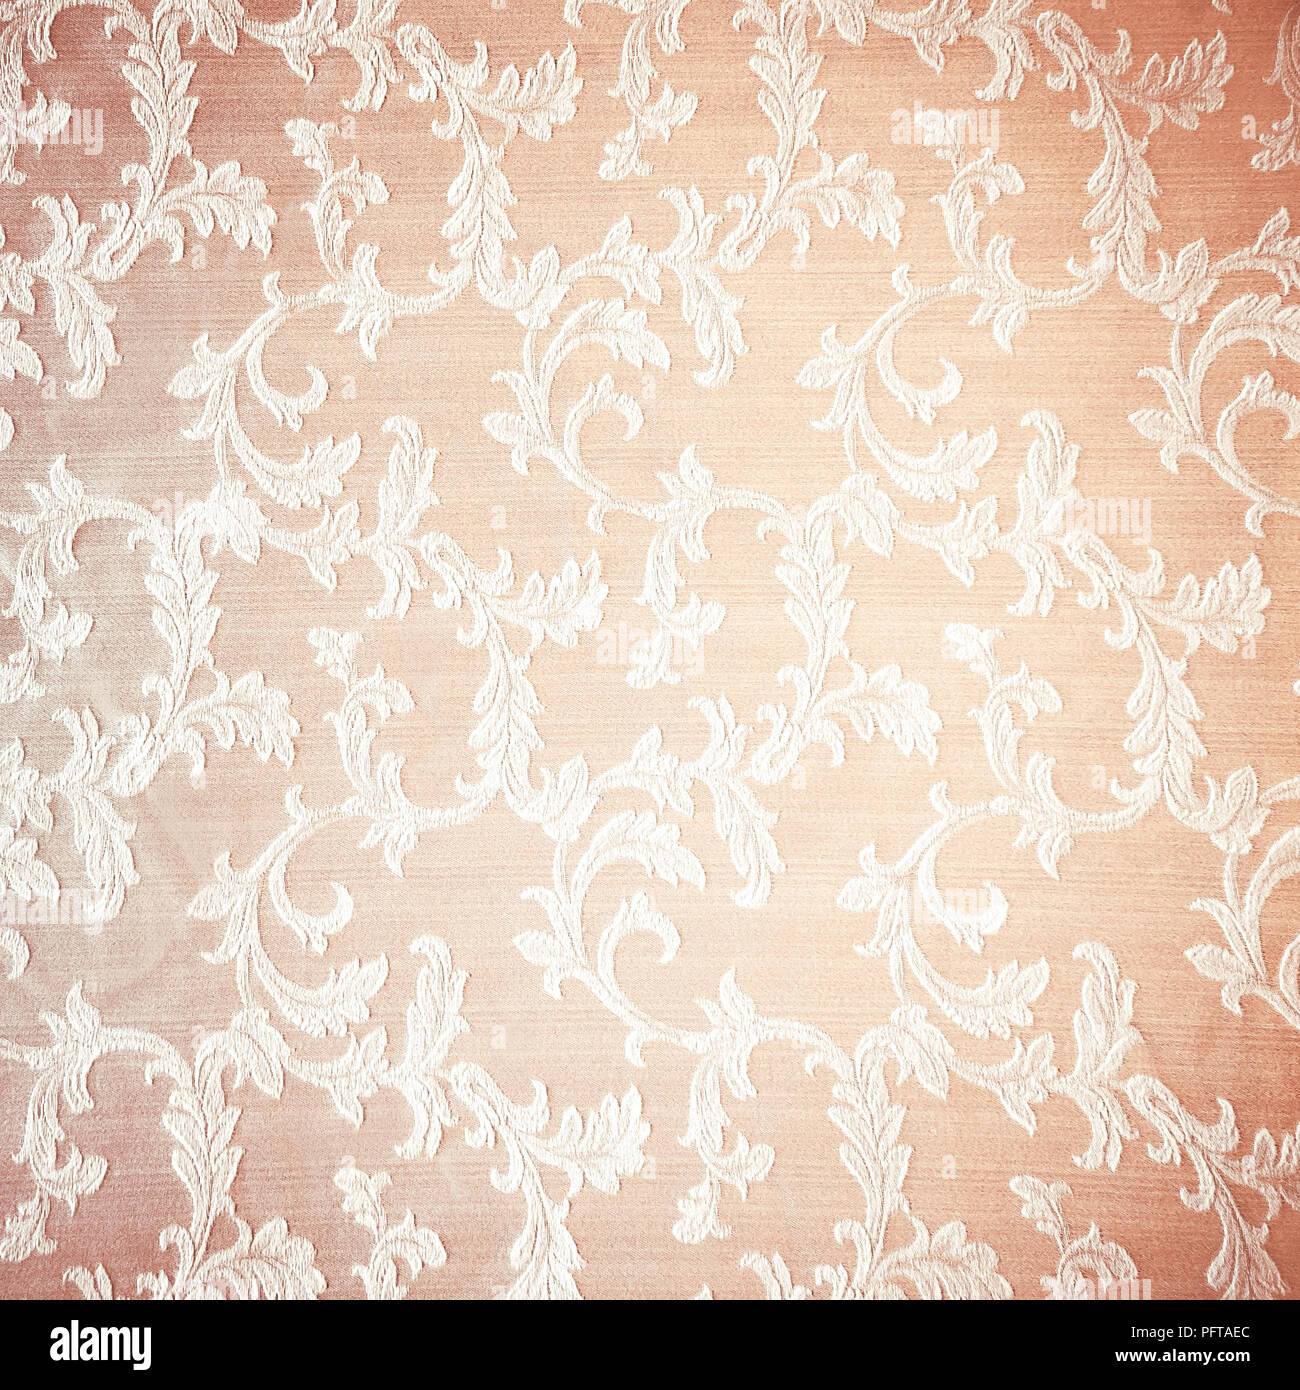 Retro Floral Curtains Background Abstract Beige Textured Wallpaper Beautiful Fabric Decorated With Vintage Style Embroidered Flowers